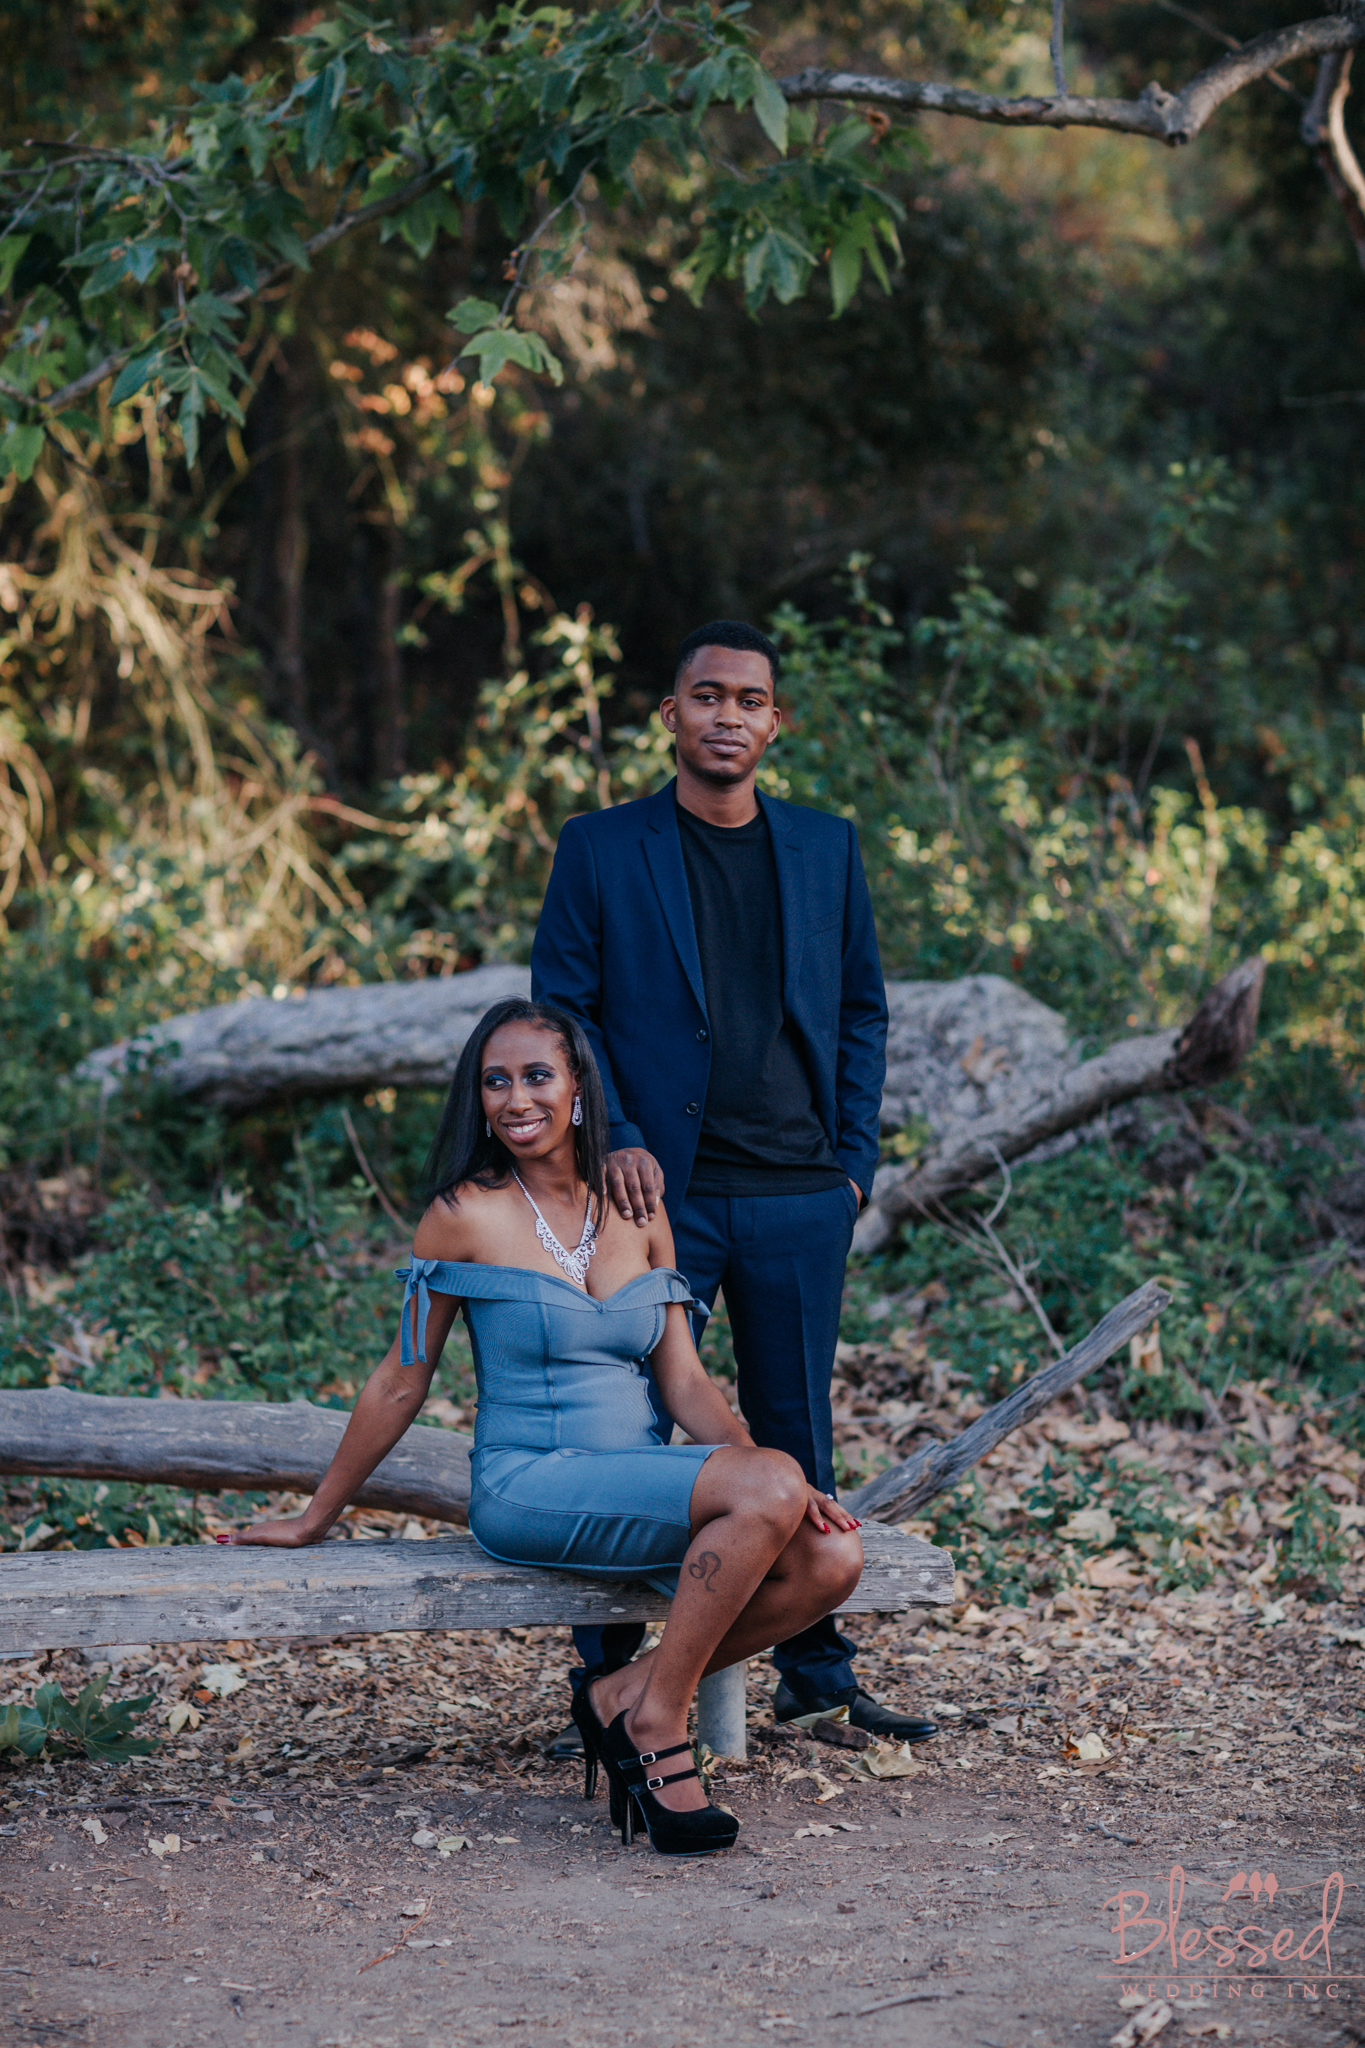 Marian Bear Park Engagement Session by Blessed Wedding Photography  (11 of 25).jpg